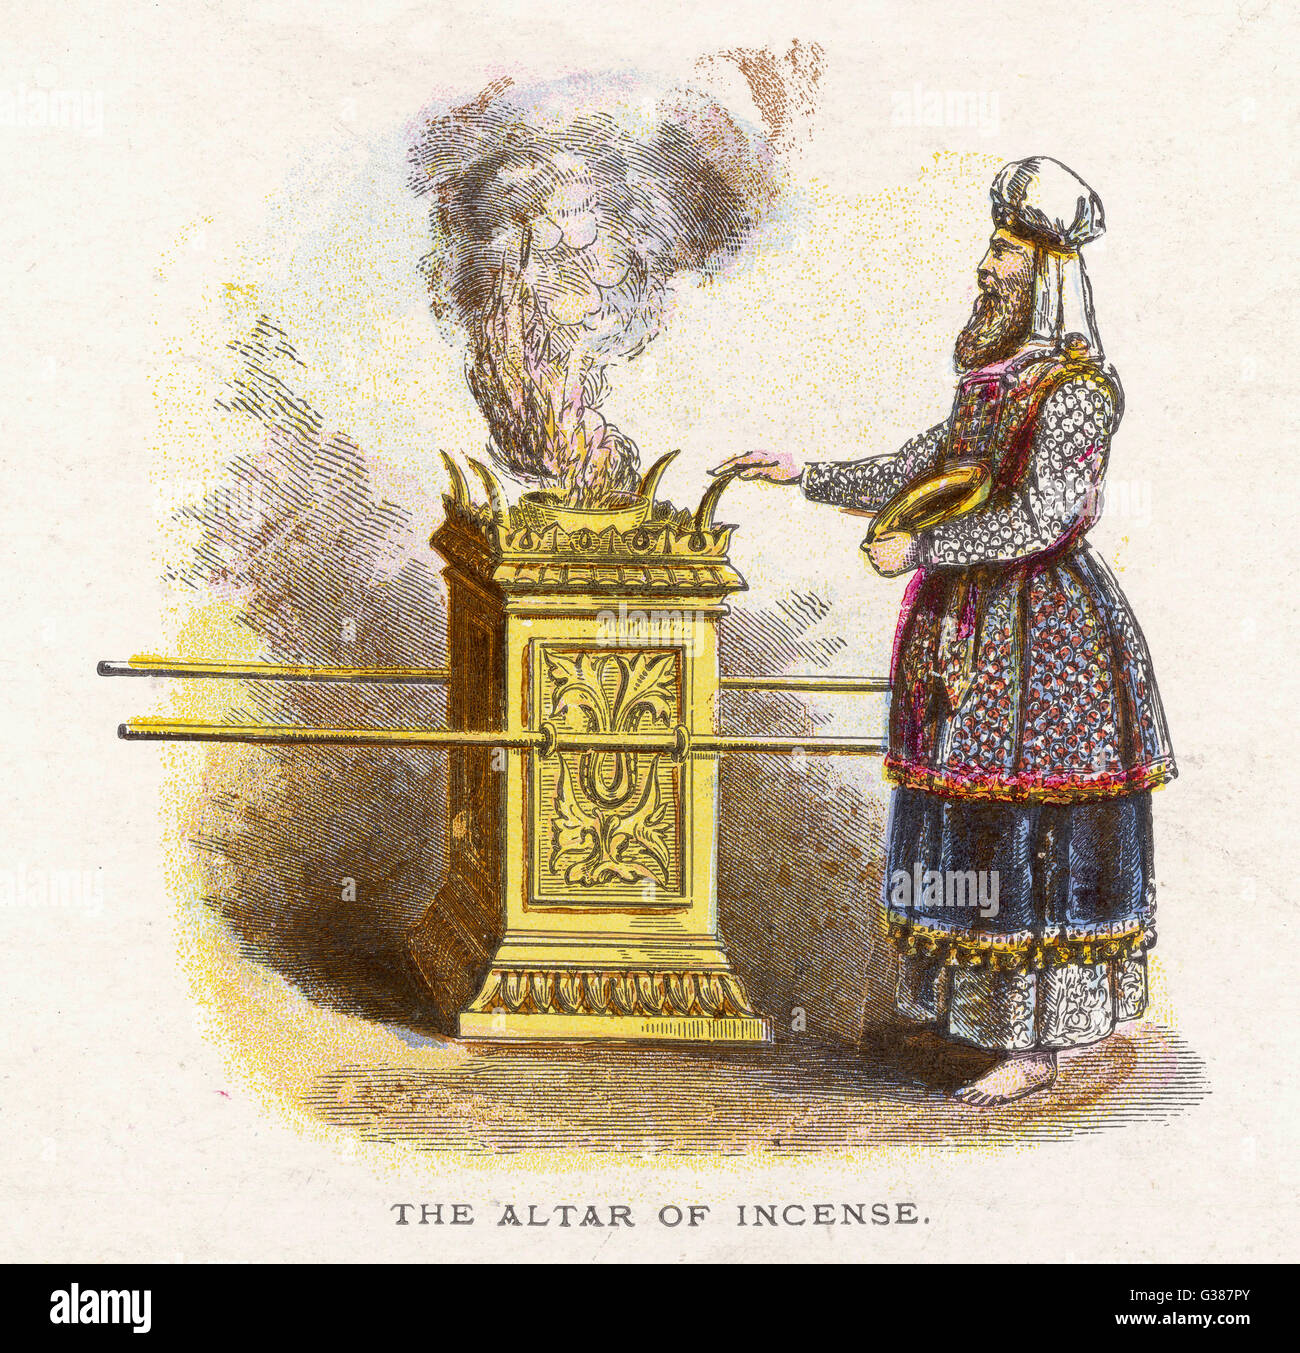 Ceremonial objects : THE ALTAR OF INCENSE - Stock Image